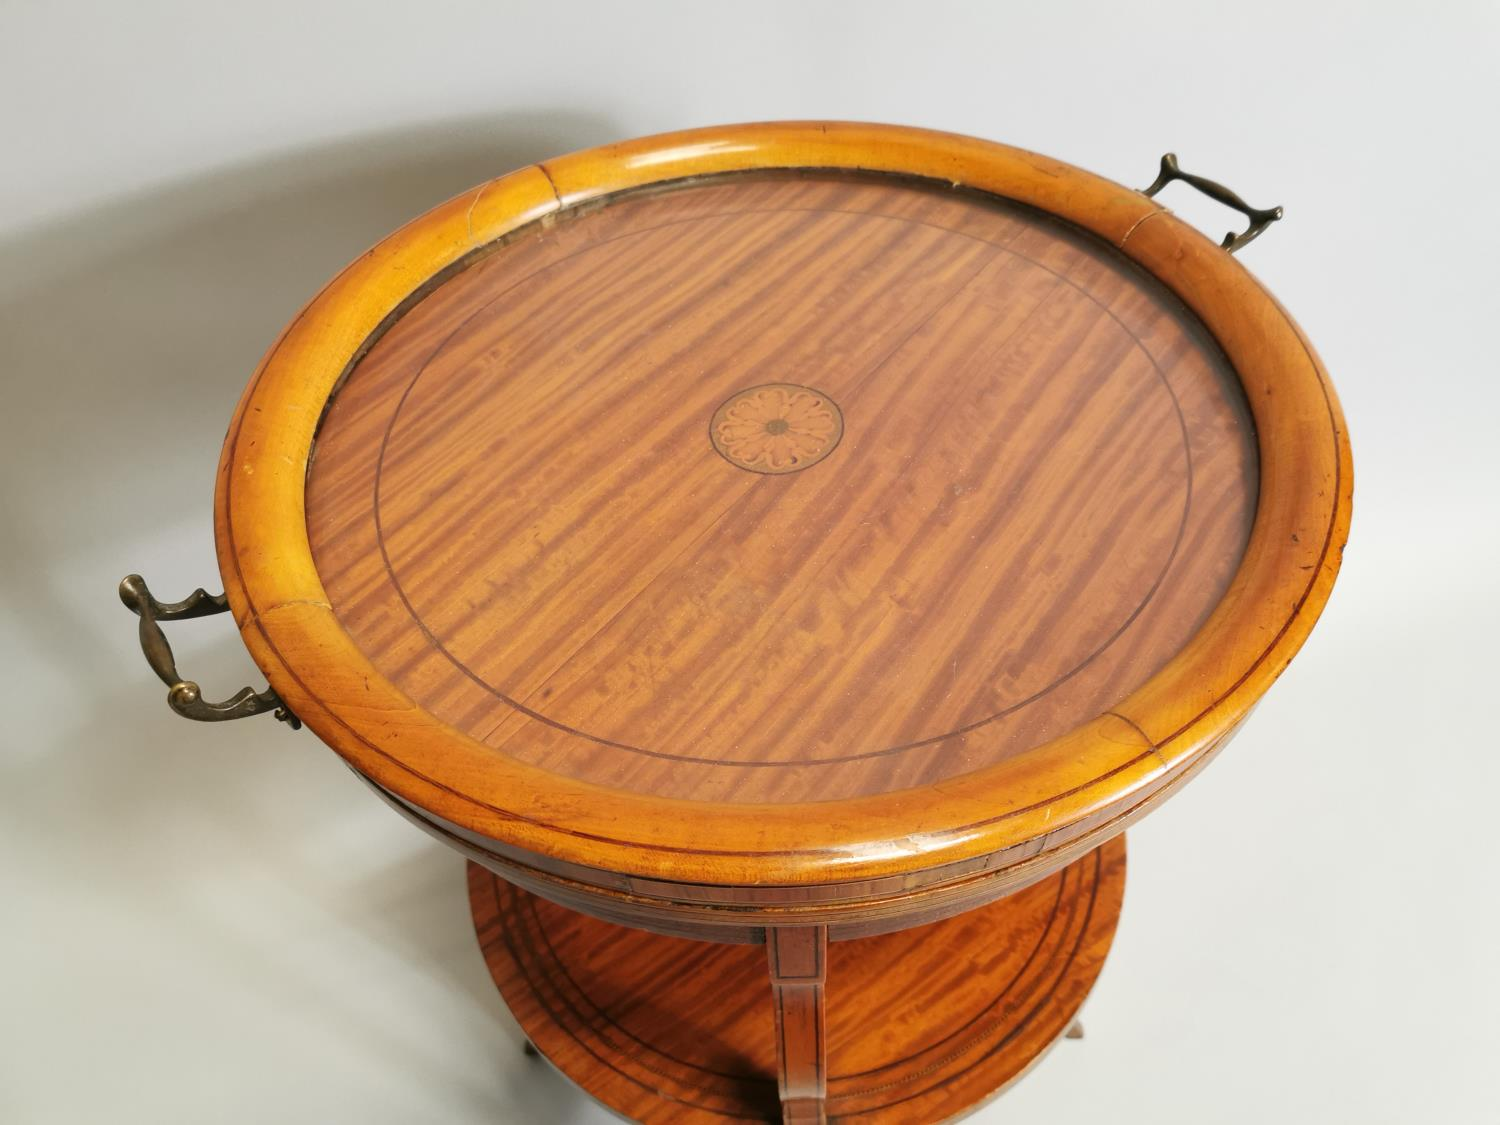 19th. C. satinwood wine table - Image 2 of 5